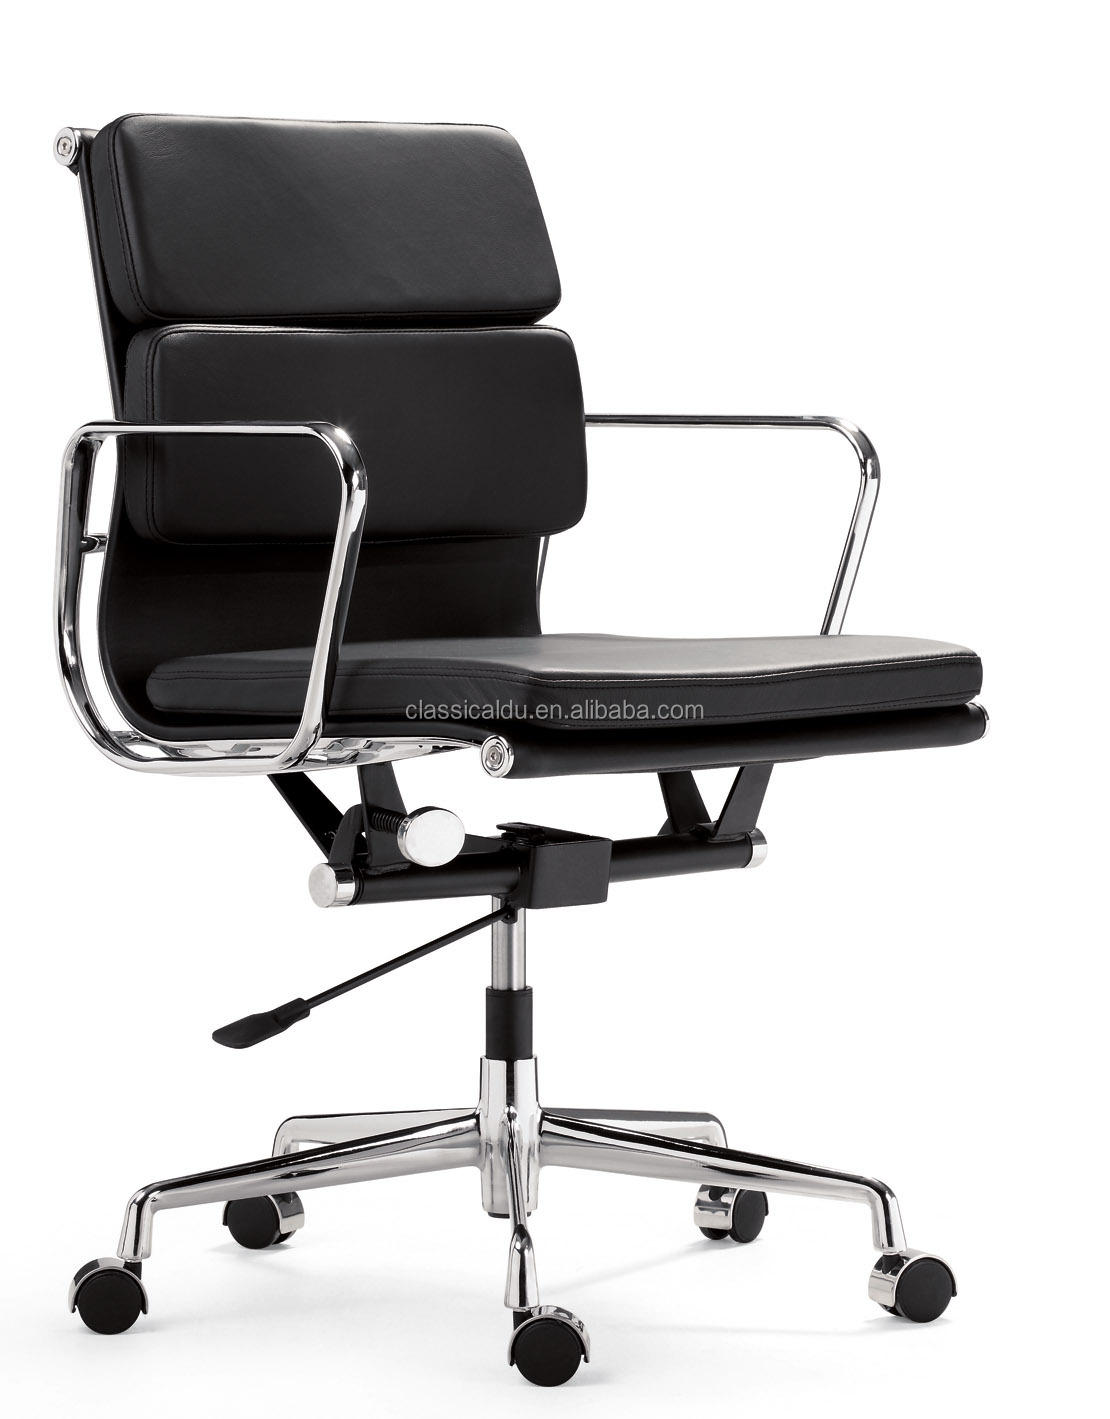 office chair basegerman office chairsoffice chair gas lift View